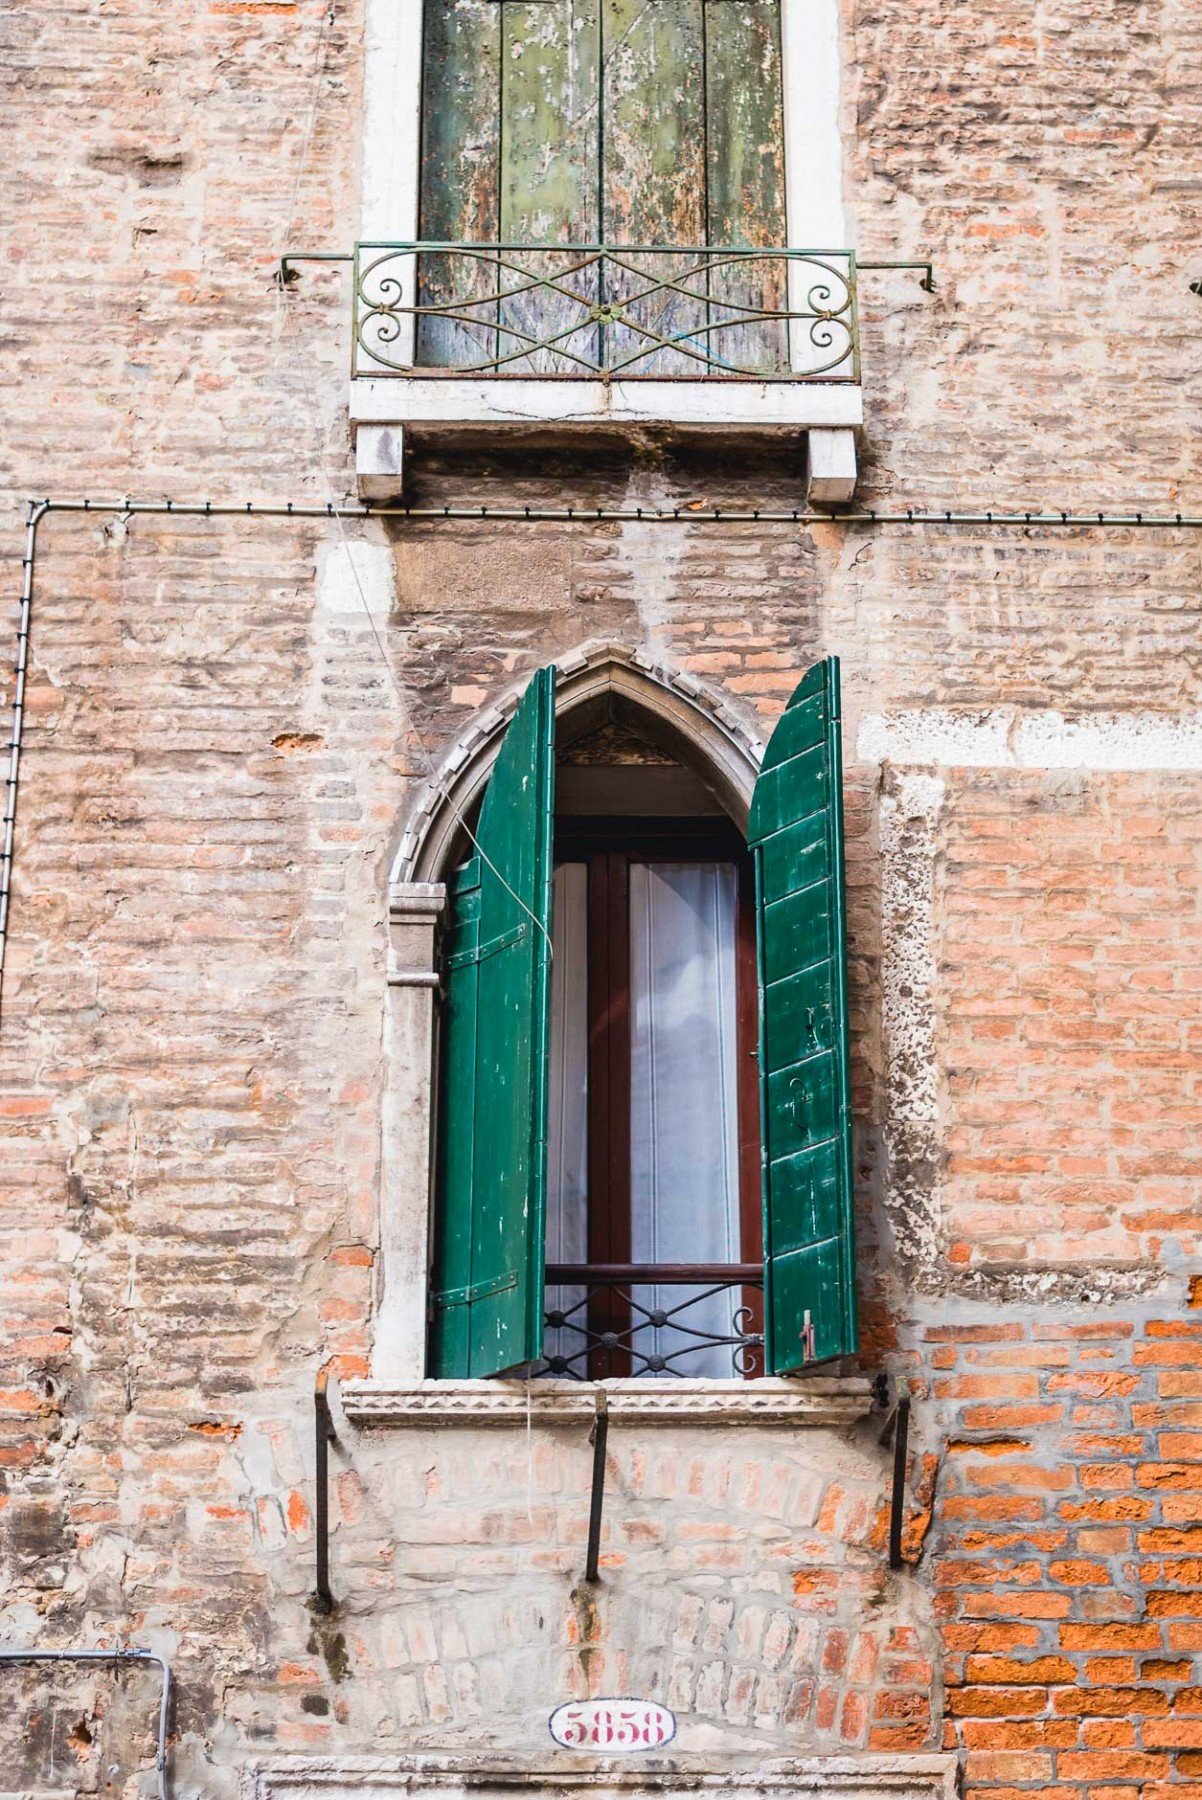 Marco Polo's house in Venice, Italy